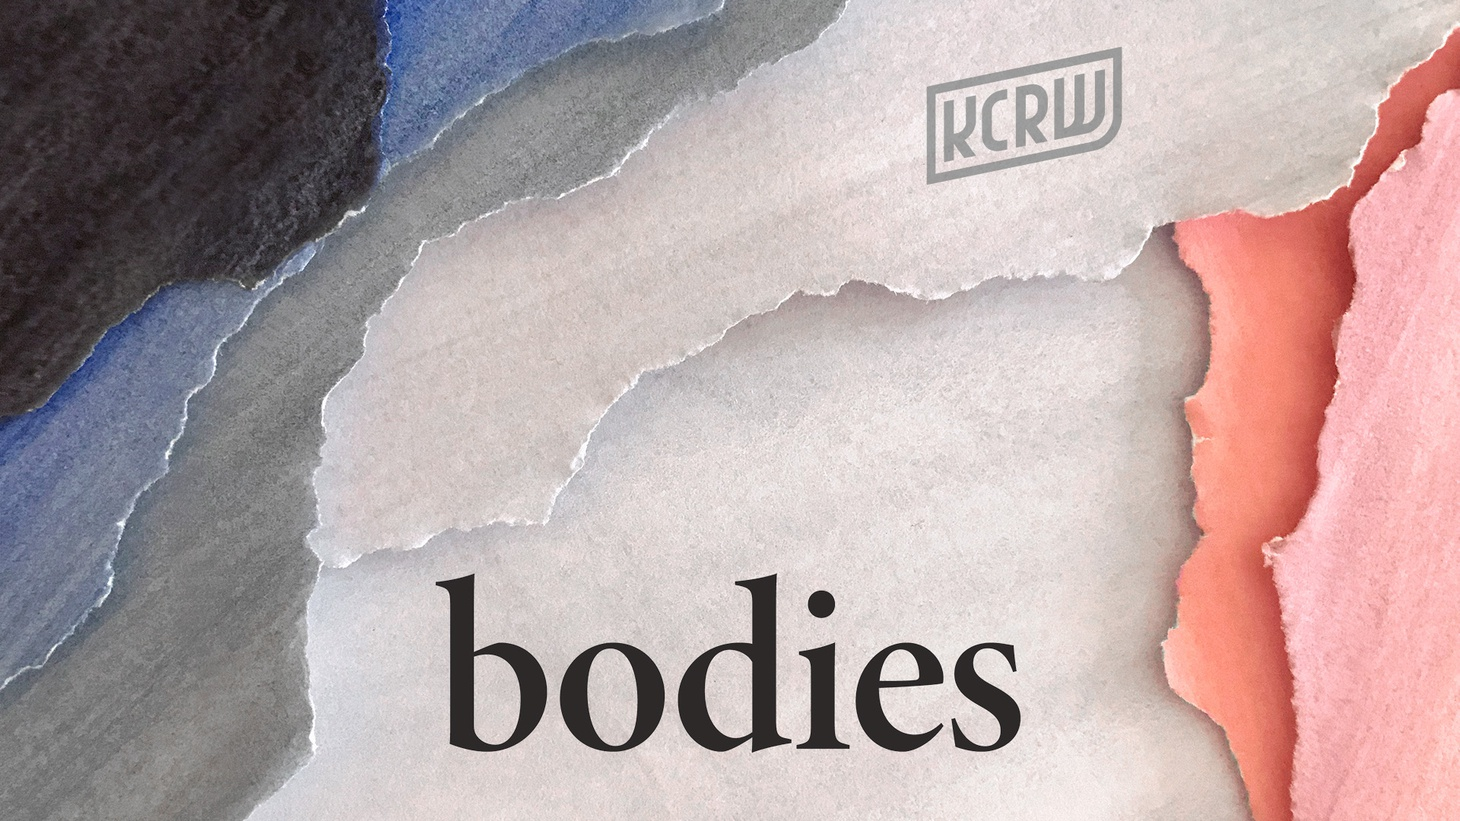 Bodies is coming back! Season 2 will launch on March 4, 2020.  Join Bodies Facebook Group:  https://www.facebook. com/groups/BodiesPodcast/  Email us:  allison@bodiespodcast.com  Follow us: @bodiespodcast